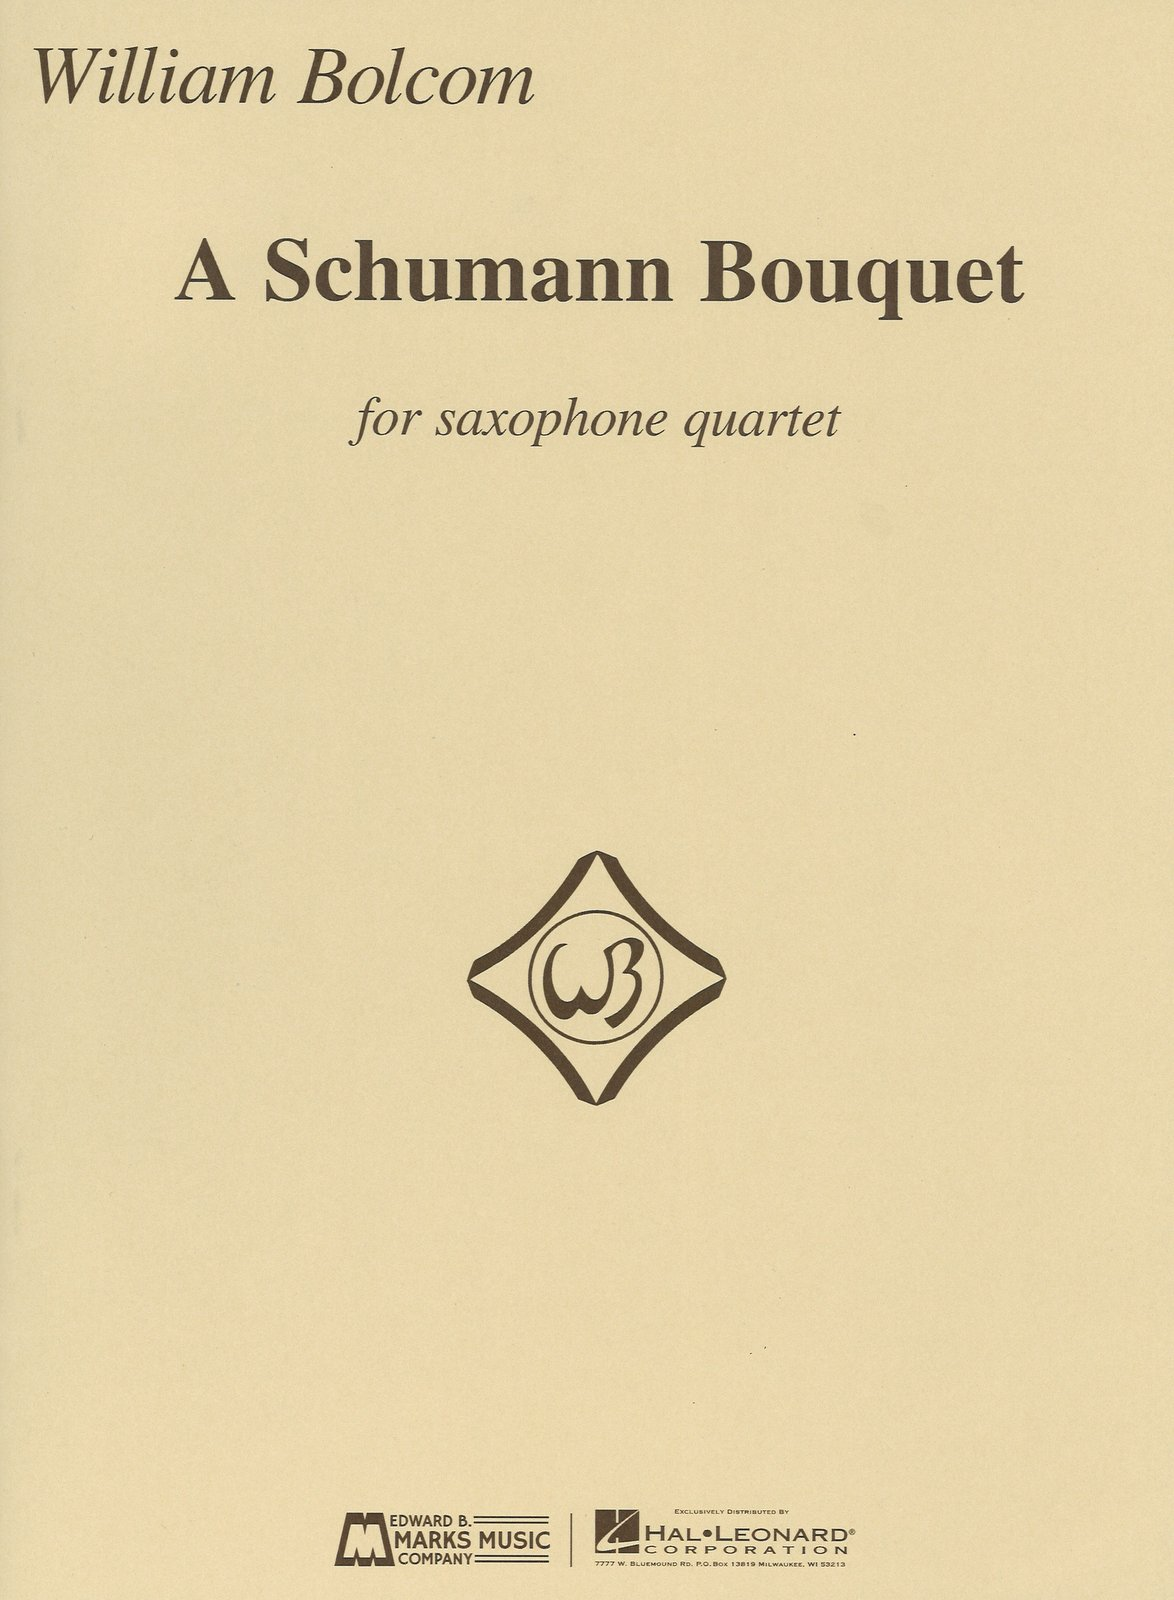 Schumann Bouquet